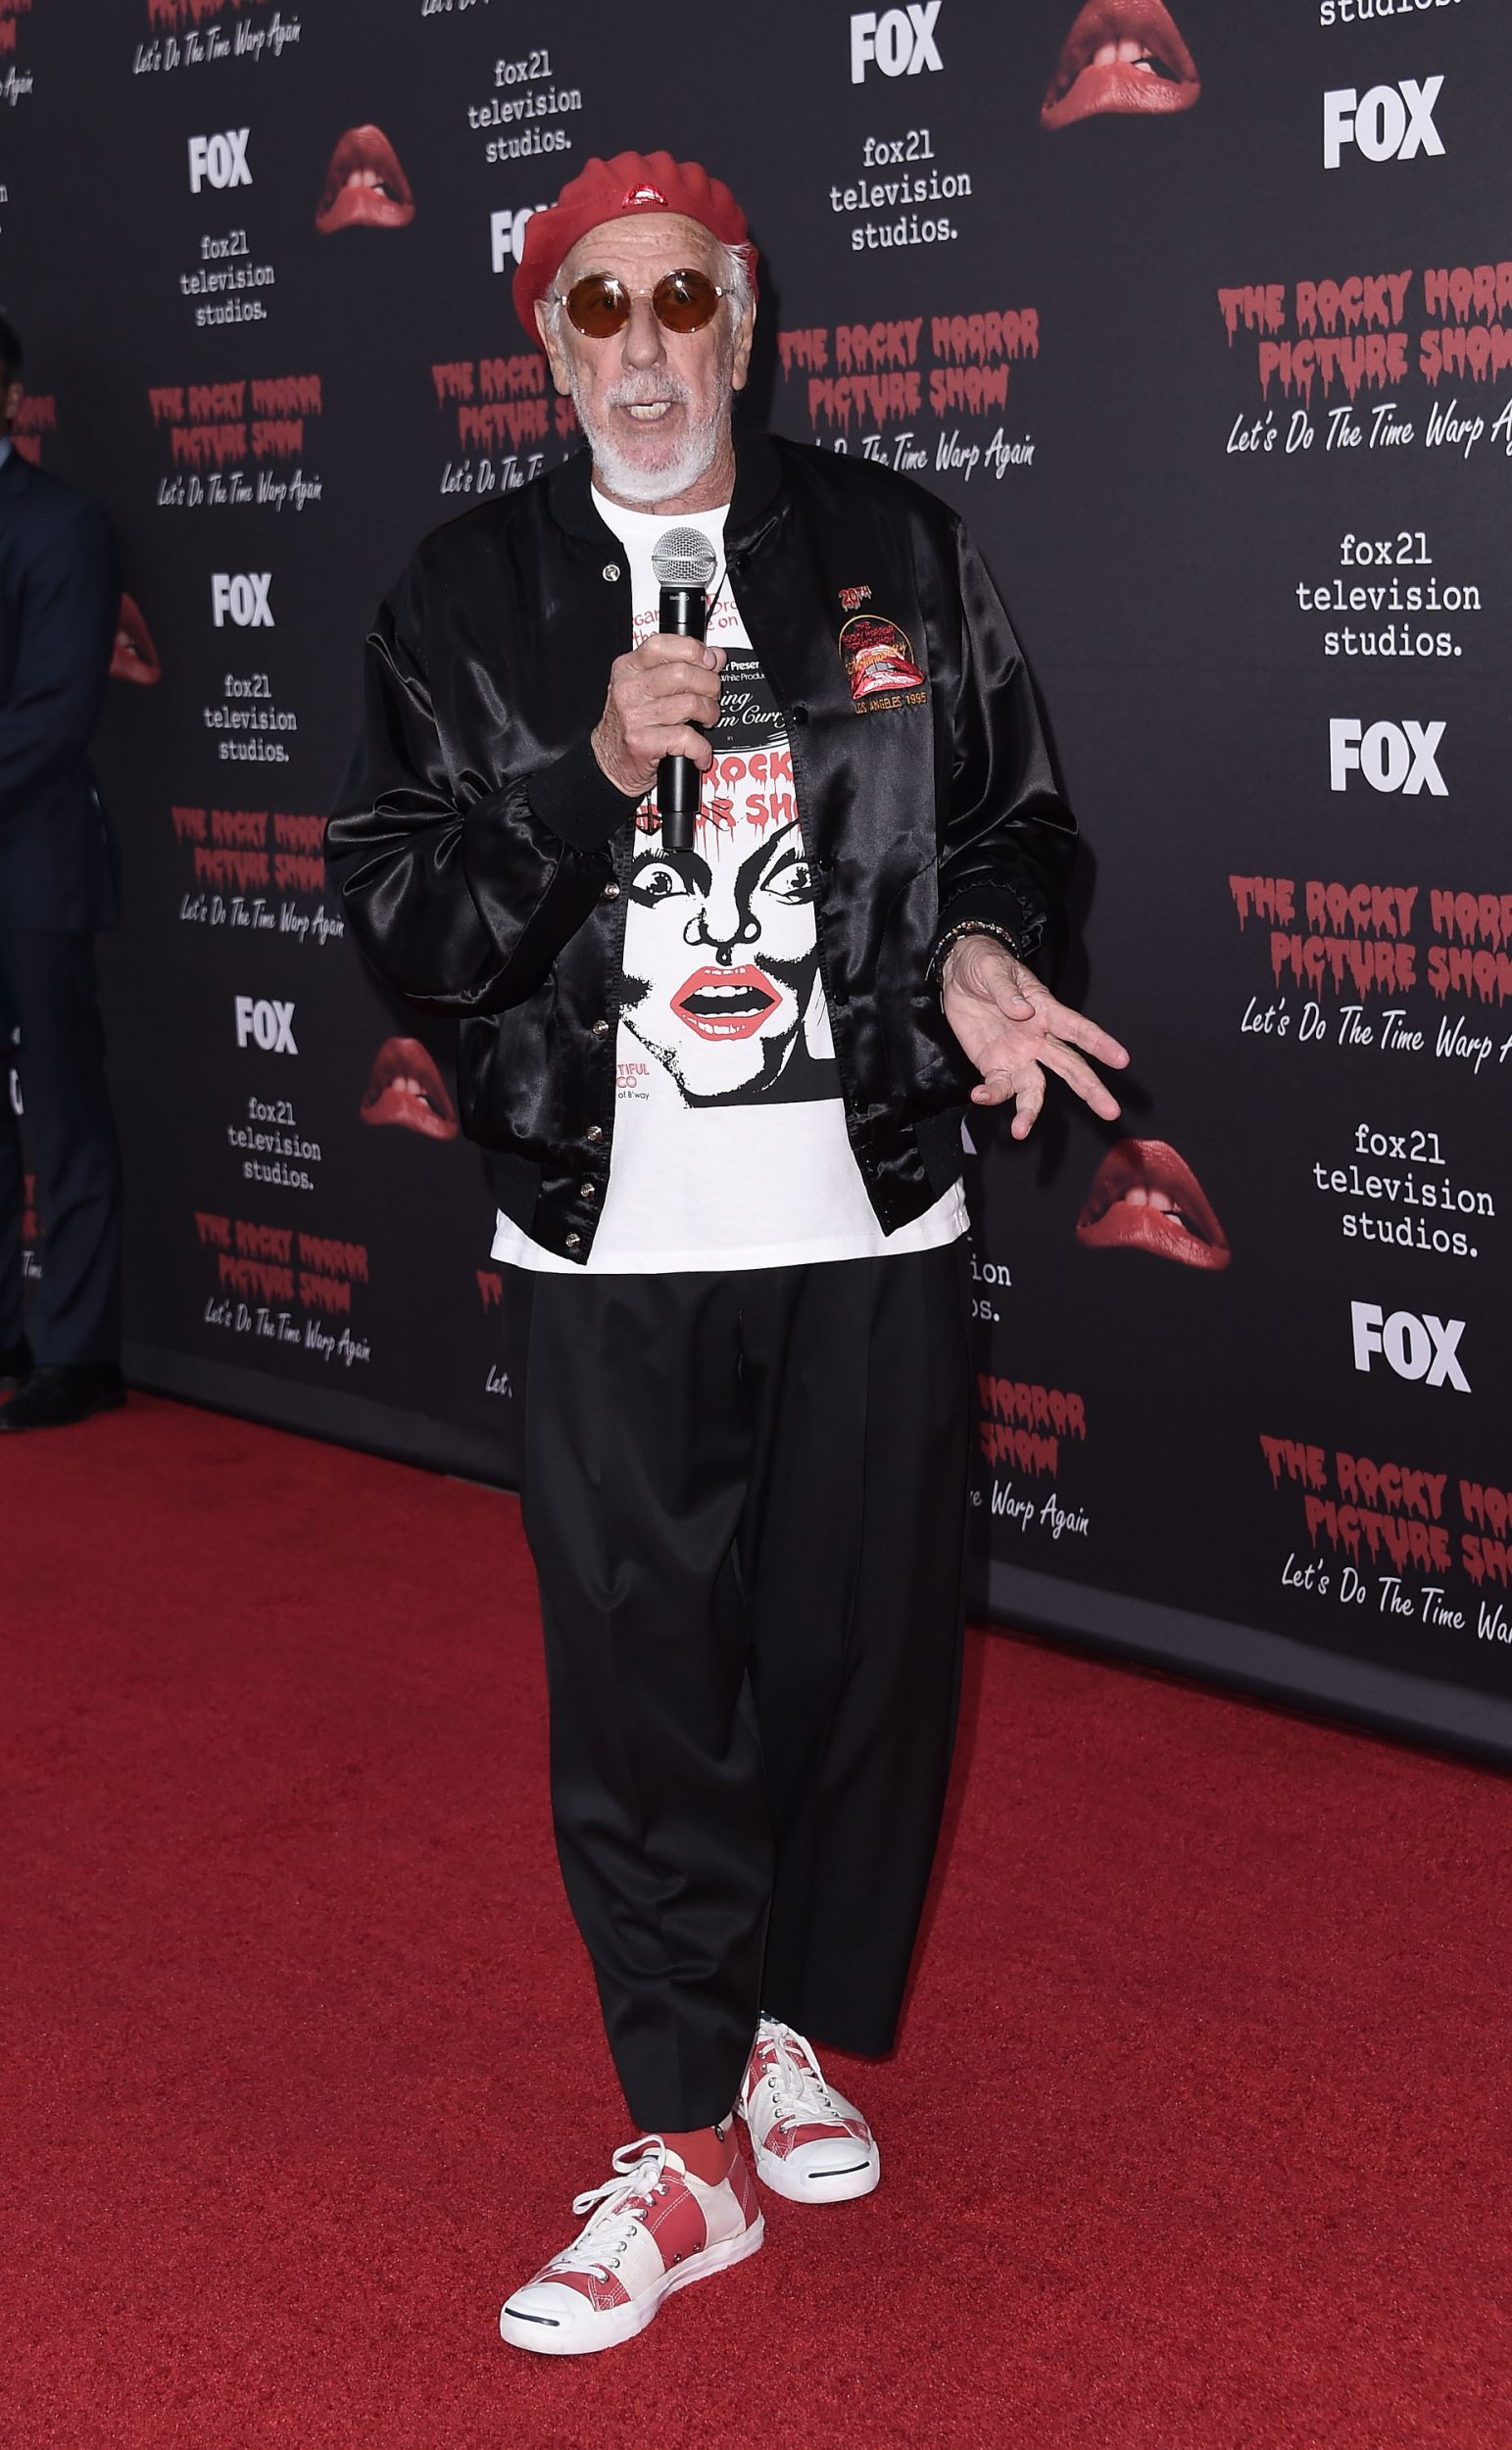 THE ROCKY HORROR PICTURE SHOW: Let's Do The Time Warp Again (and Transylvanians!): Executive Producer Lou Adler arrives at THE ROCKY HORROR PICTURE SHOW: Let's Do The Time Warp Again (and Transylvanians!) premiere party red carpet at The Roxy on Thursday, Oct. 13, in Los Angeles, CA. THE ROCKY HORROR PICTURE SHOW: Let's Do The Time Warp Again (And Transylvanians!) premieres Thursday, Oct. 20 (8:00-10:00 PM ET/PT) on FOX. © 2016 FOX BROADCASTING CR: Scott Kirkland/FOX